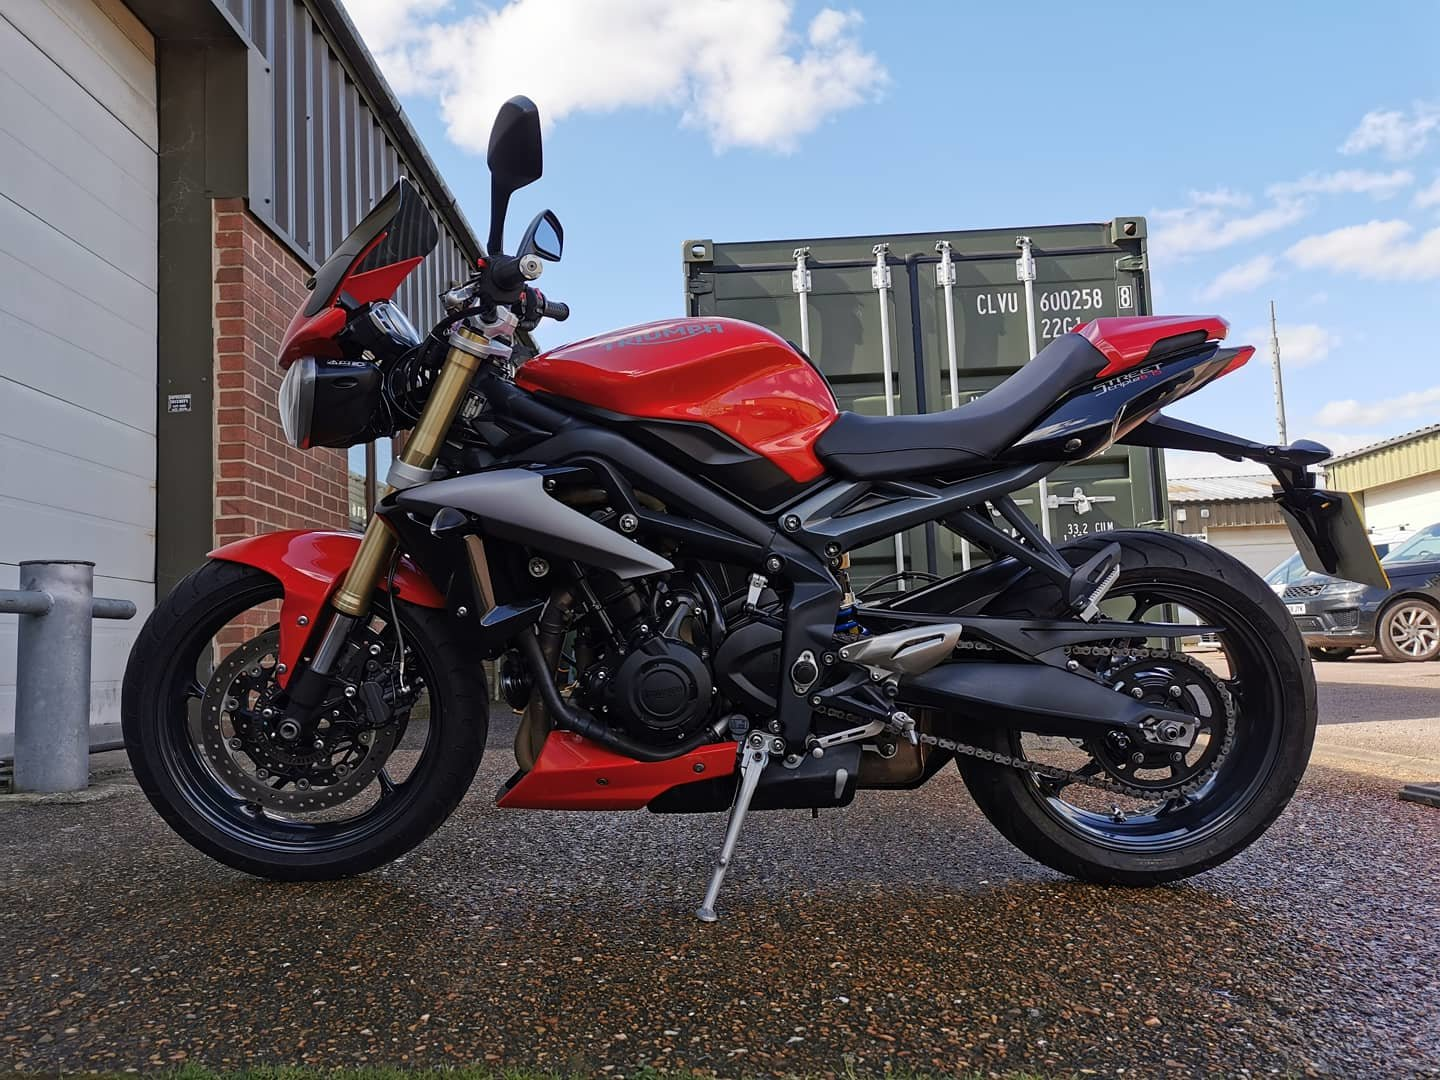 2015-64 Triumph Street triple 675 ABS *low miles* For Sale (picture 10 of 10)